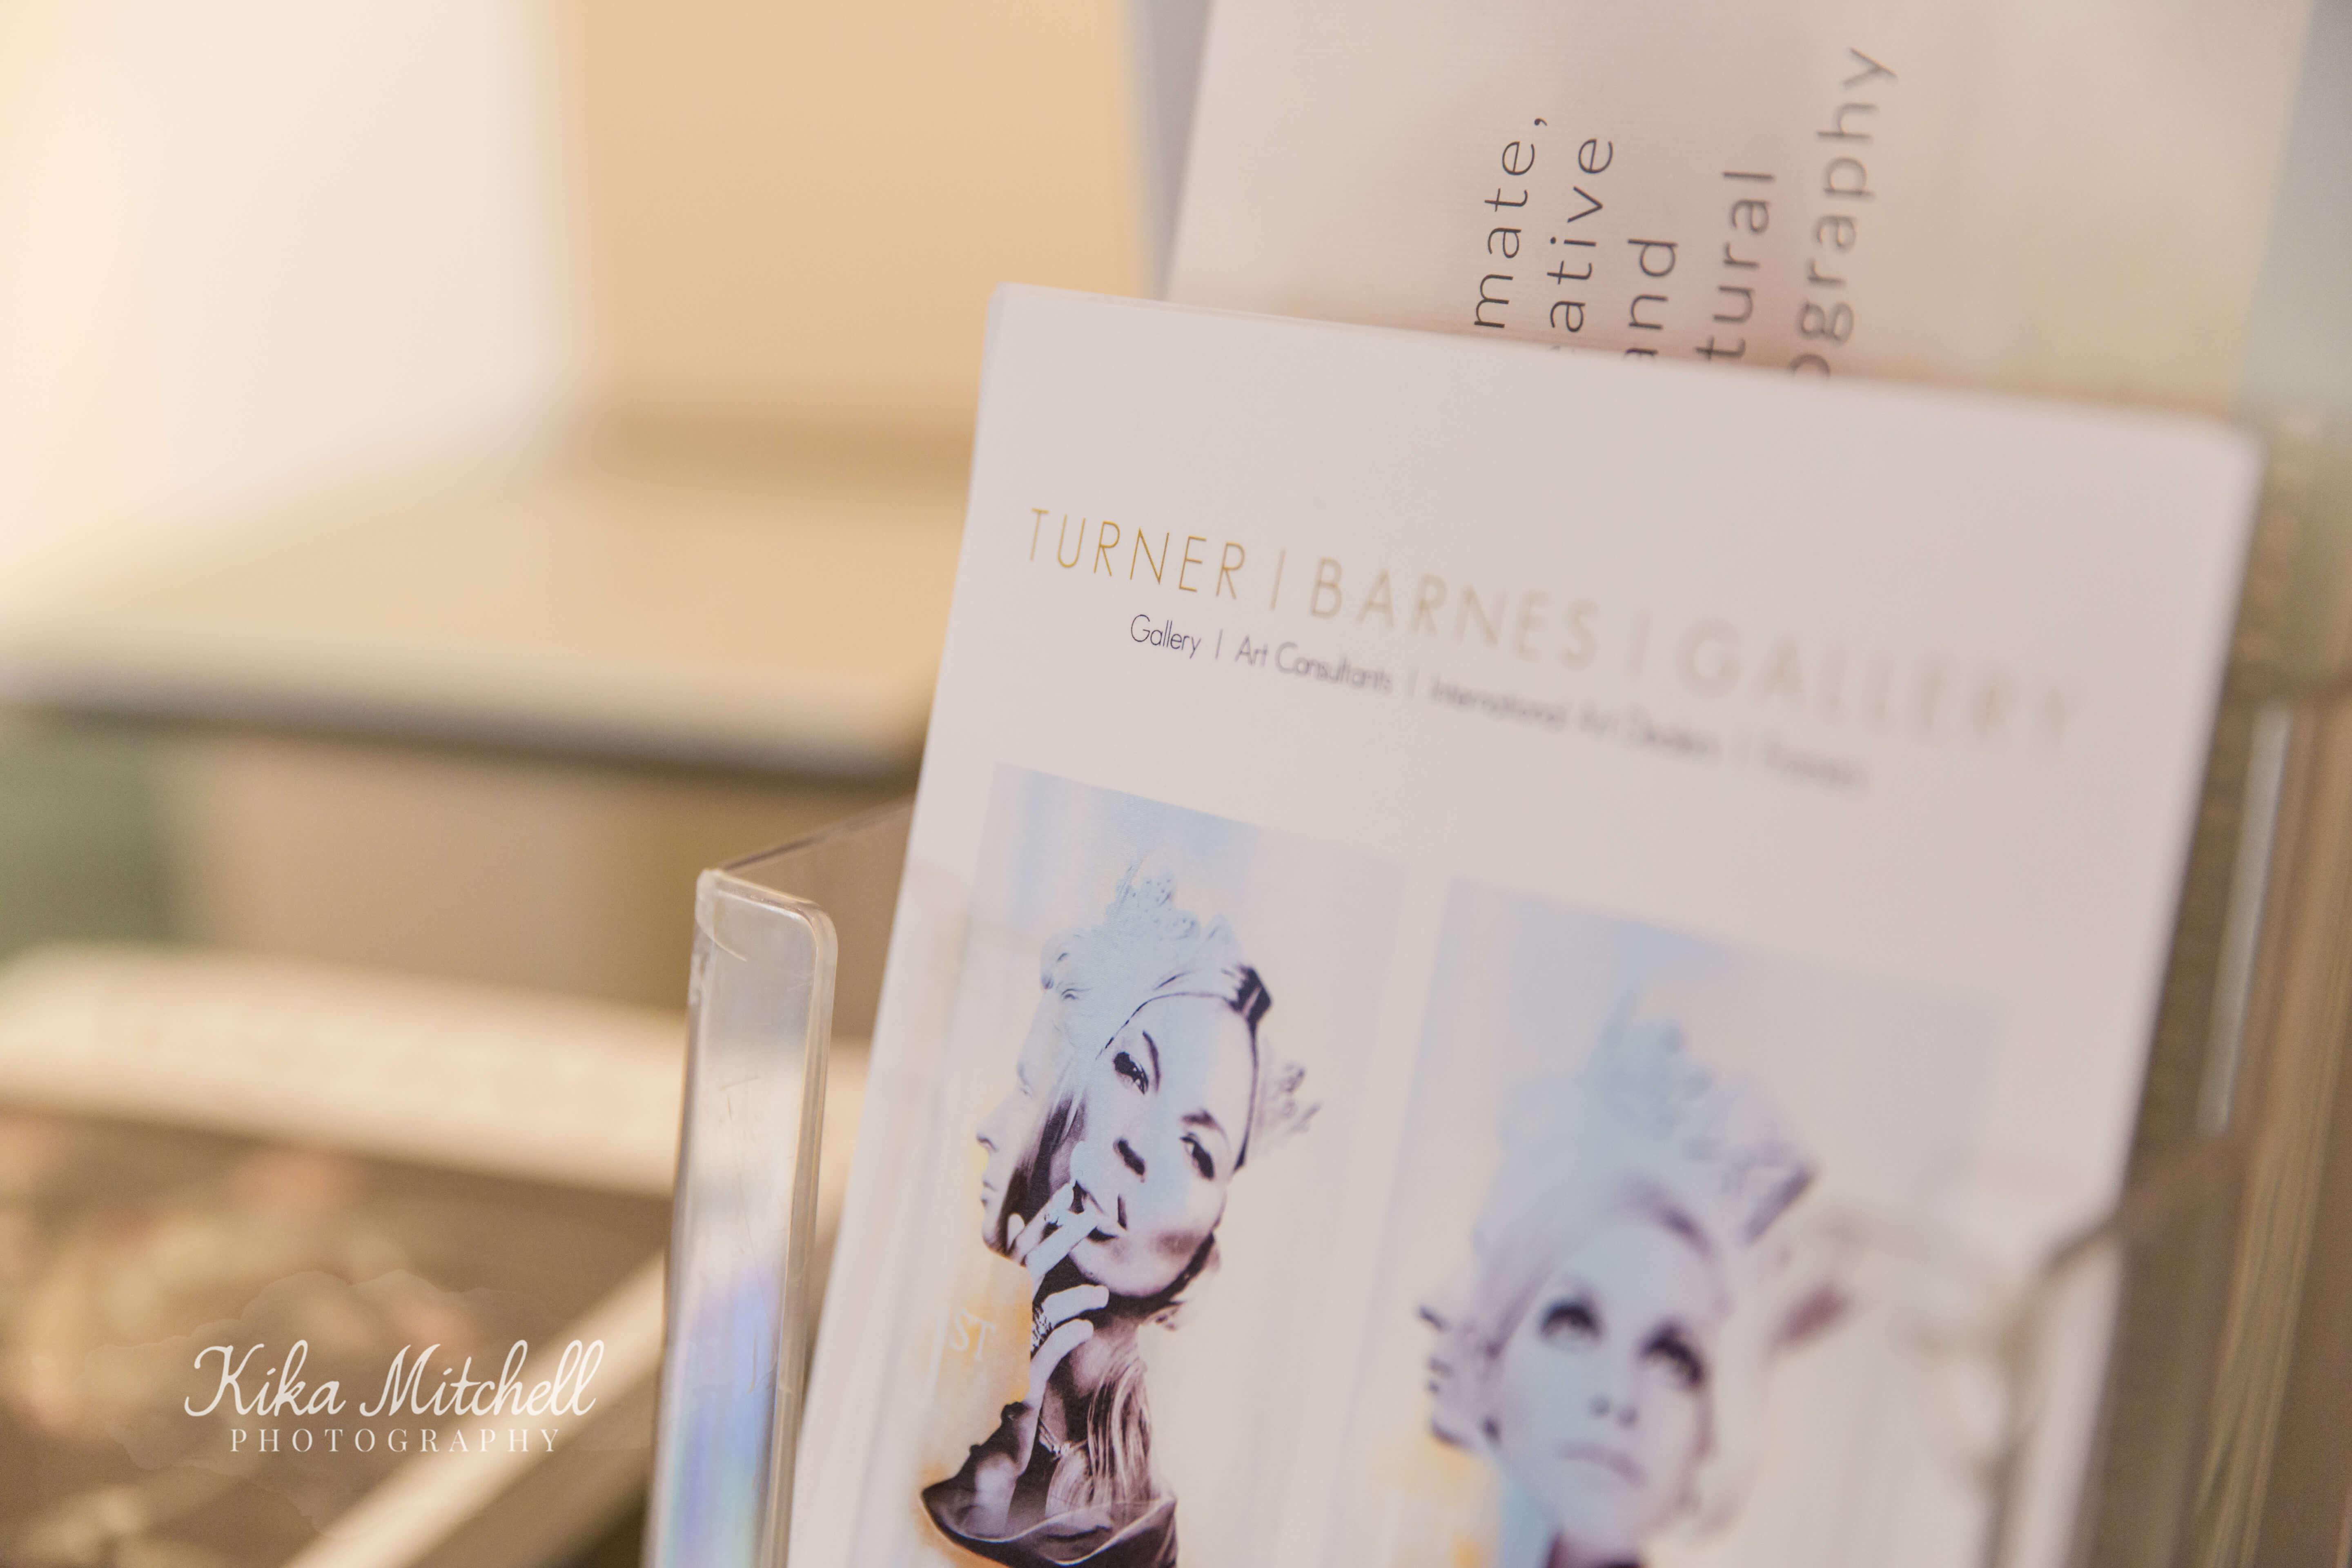 Tuner Barnes Gallery Shenfield Business photographed by Chelmsford photographer Kika Mitchell